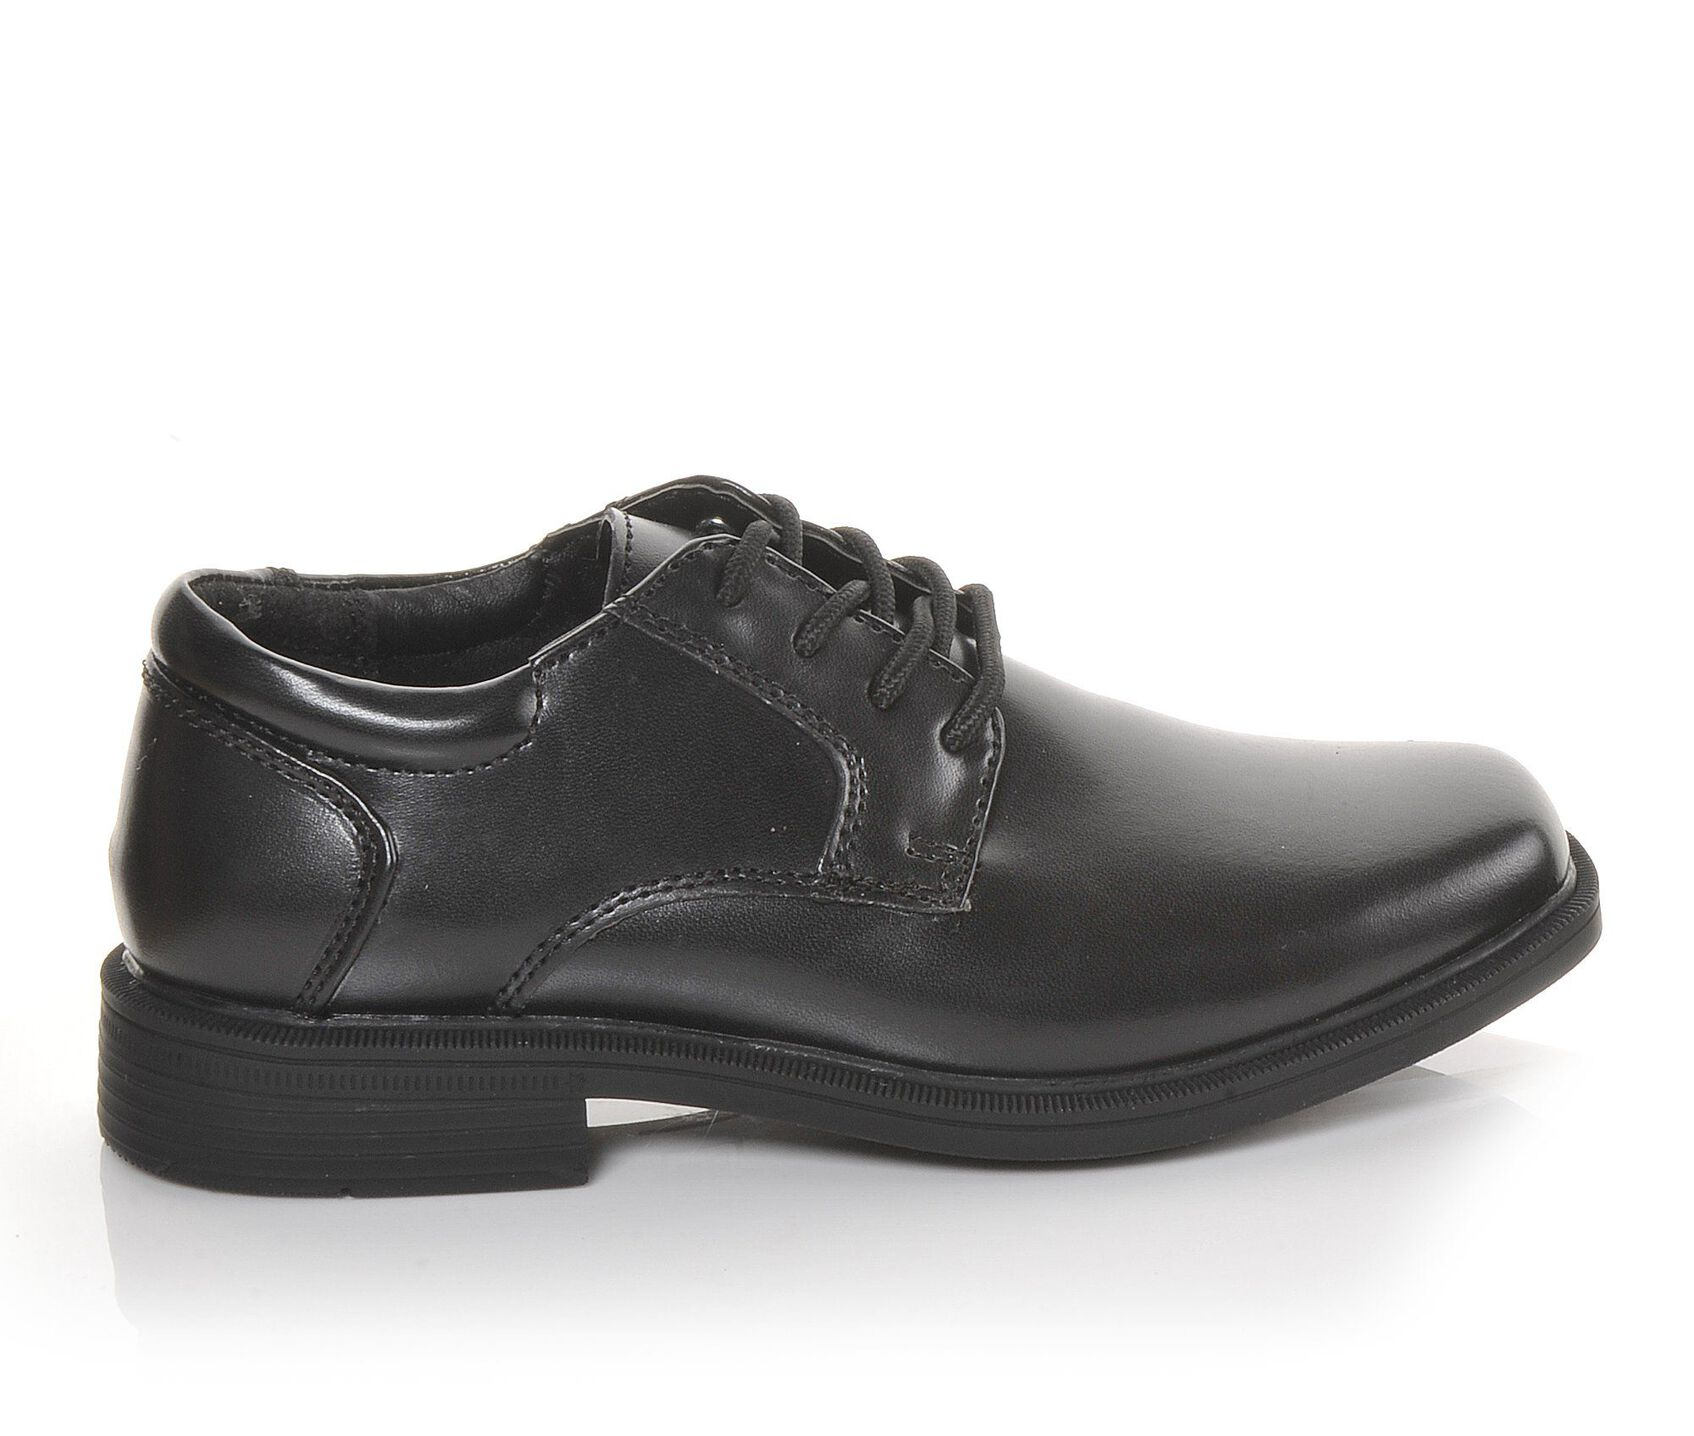 a1be5c5a58c4f Boys' Madison Ave. Little Kid & Big Kid Willie Dress Shoes | Shoe ...